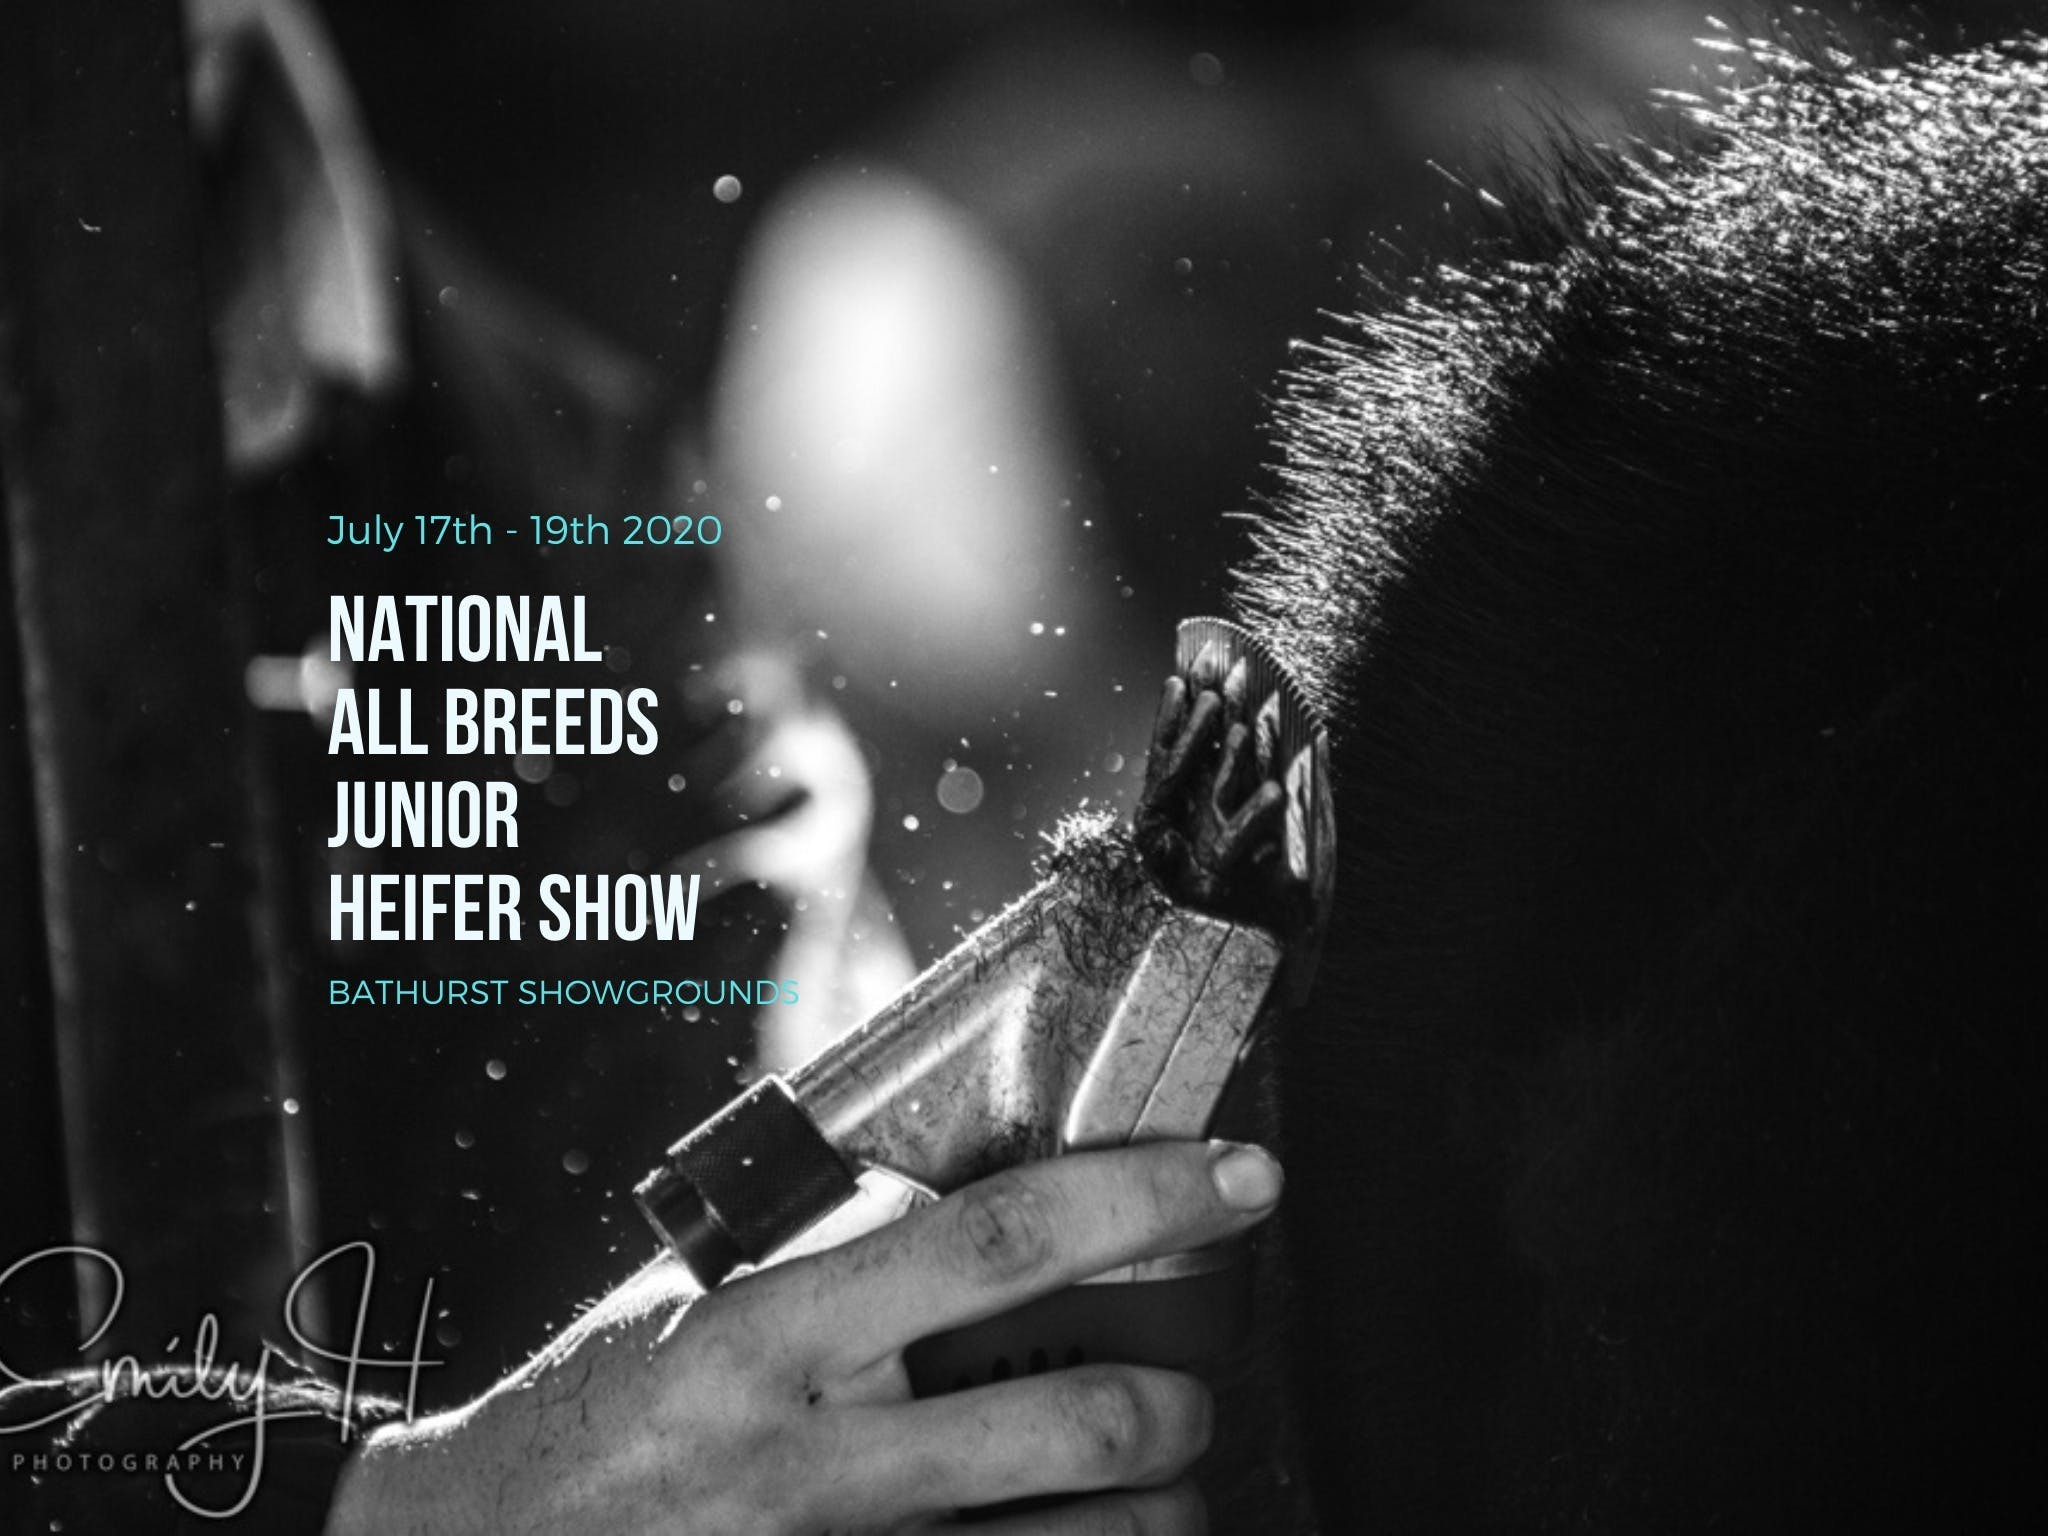 National All Breeds Junior Heifer Show - Accommodation NSW